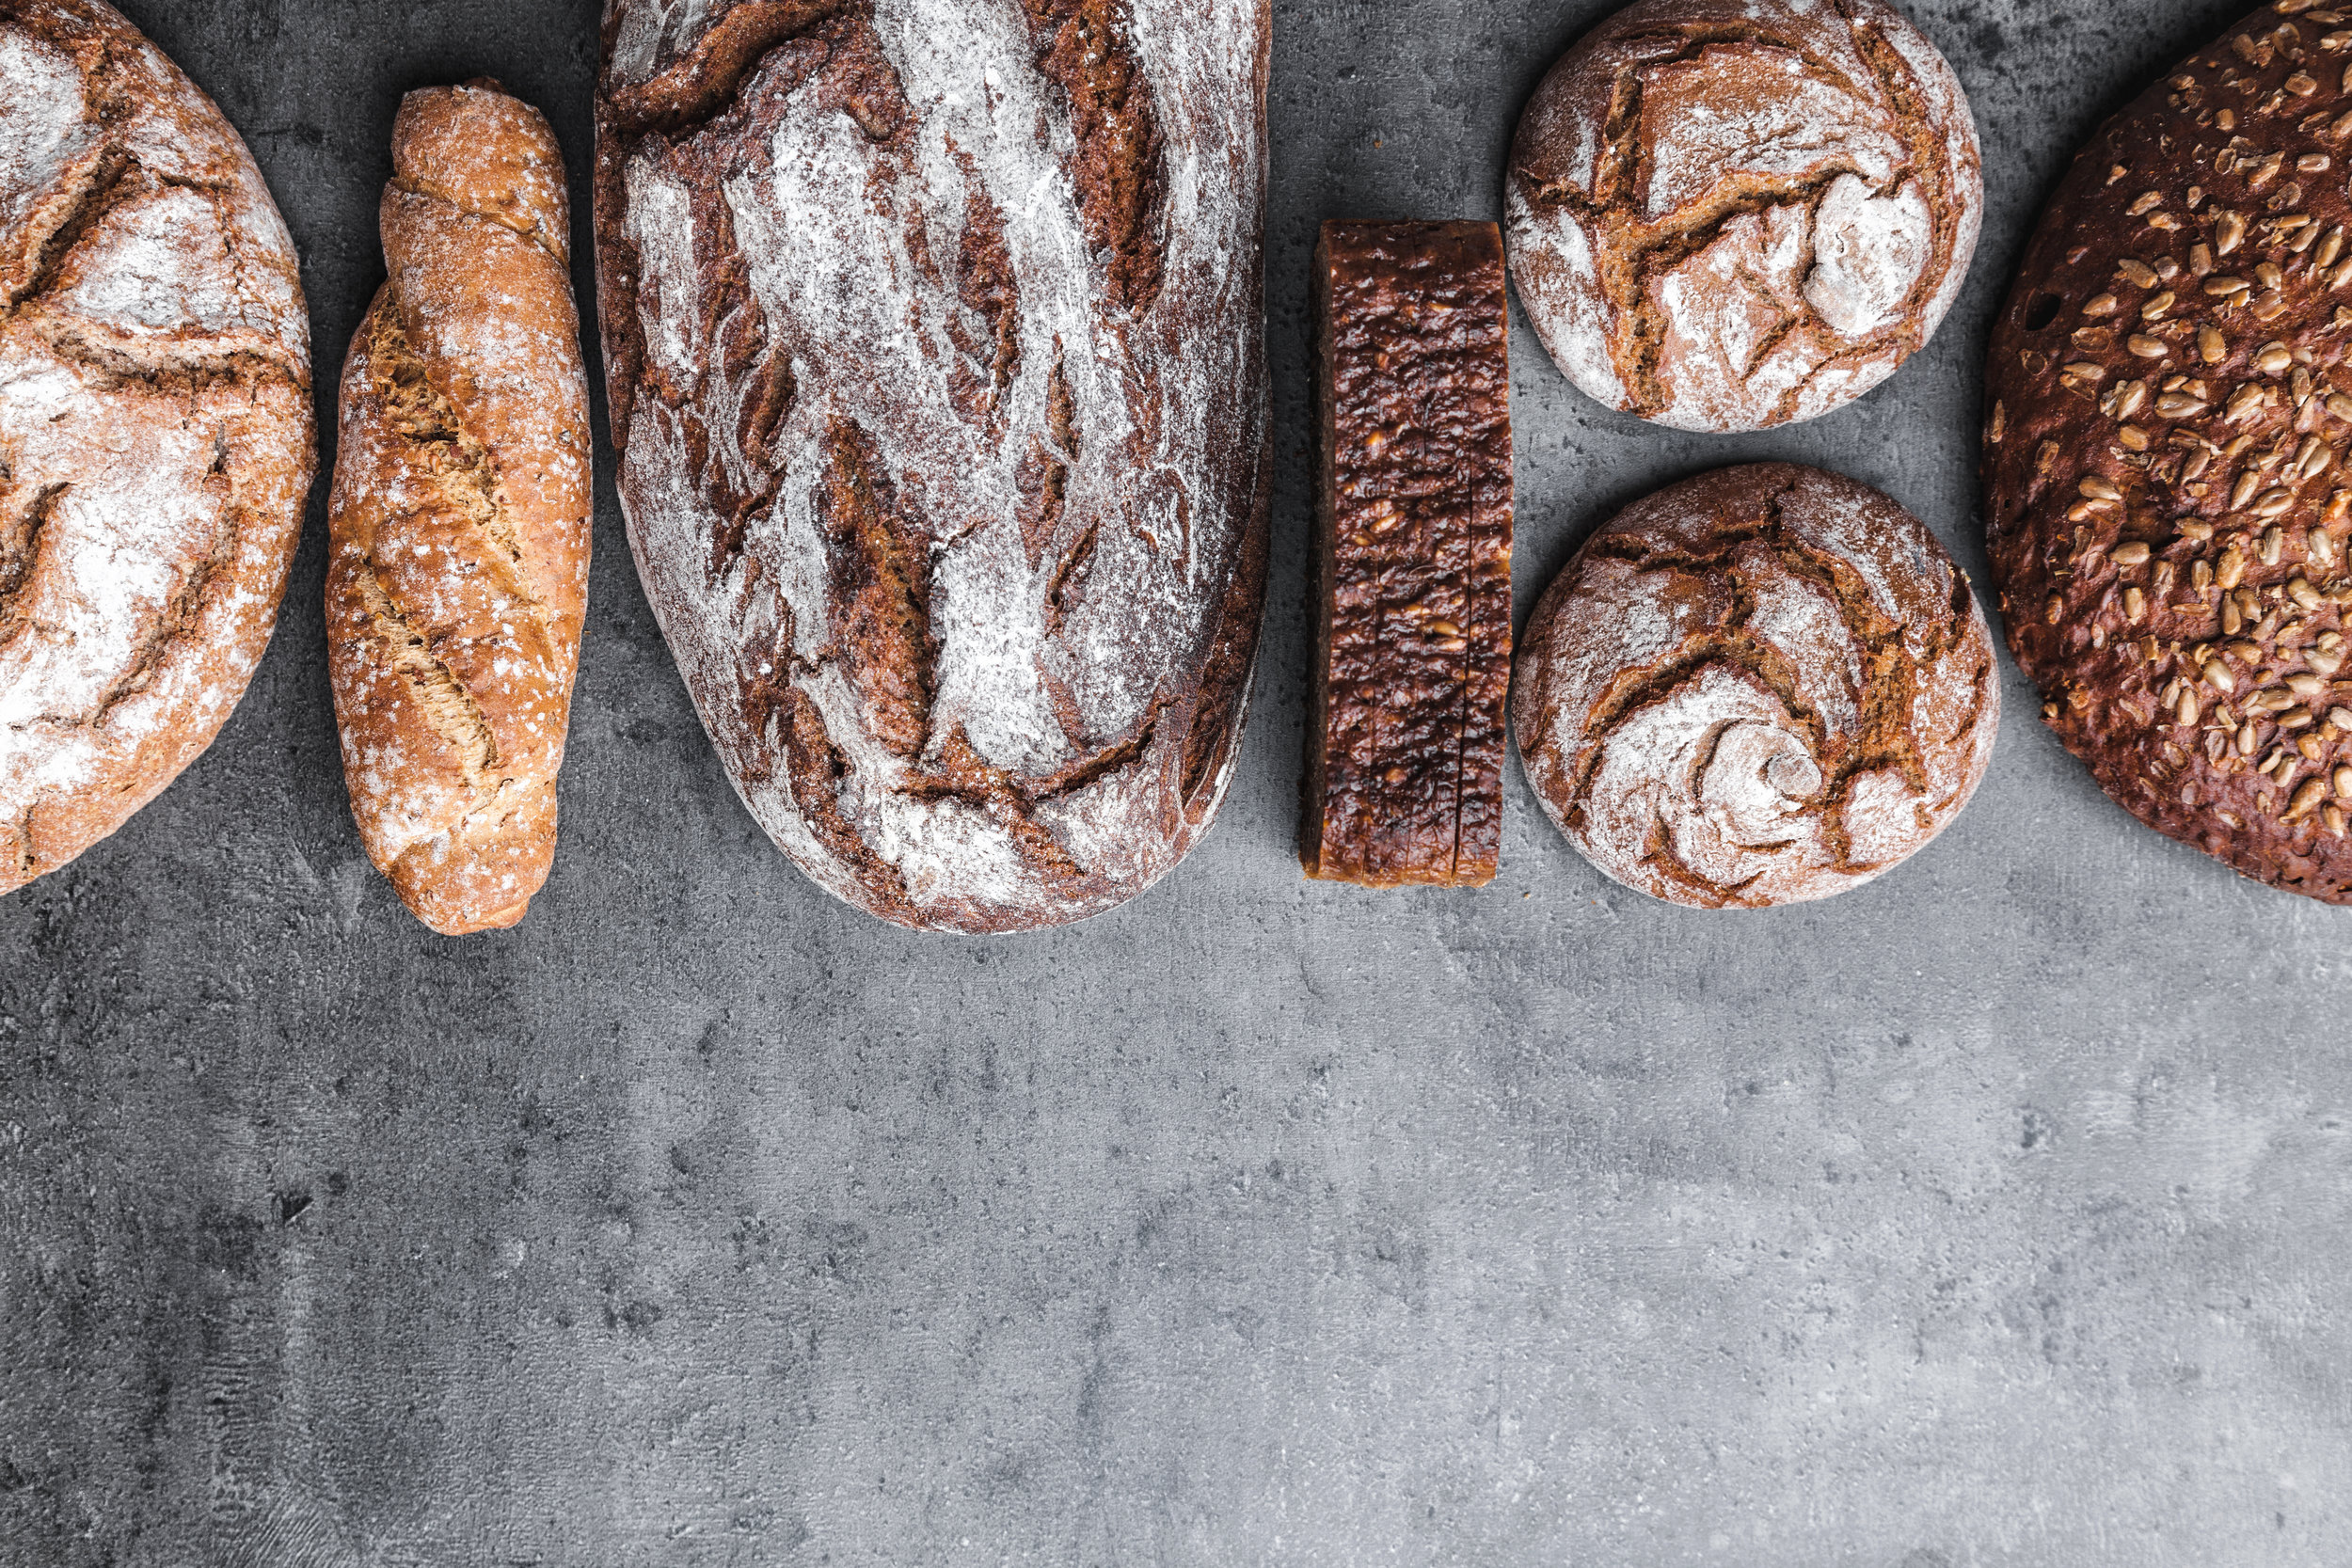 Vegan nutrition - gluten - is it good or bad for you?